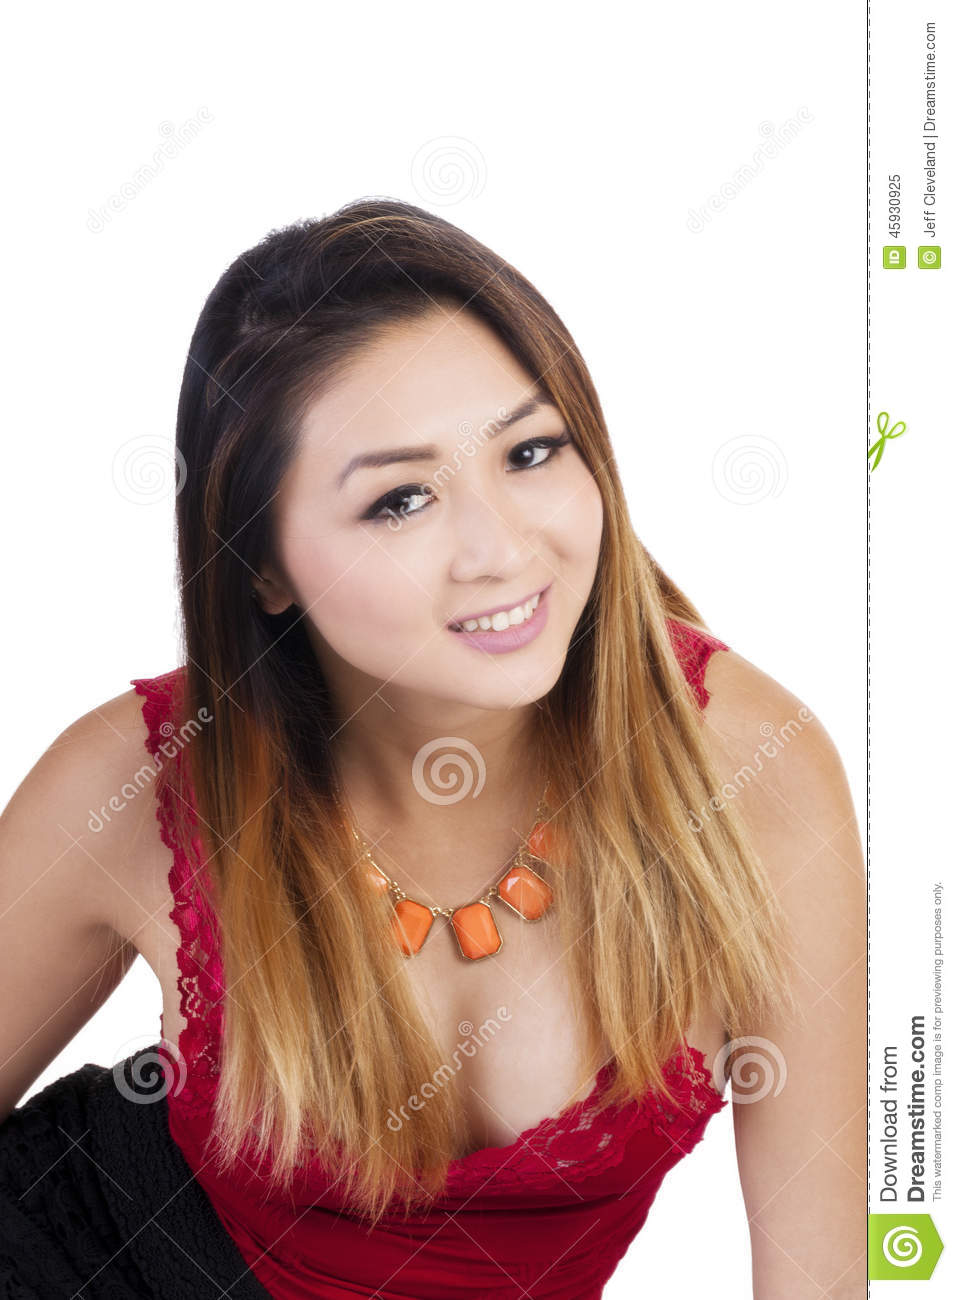 Attractive Asian American Woman Red Top Smiling Stock